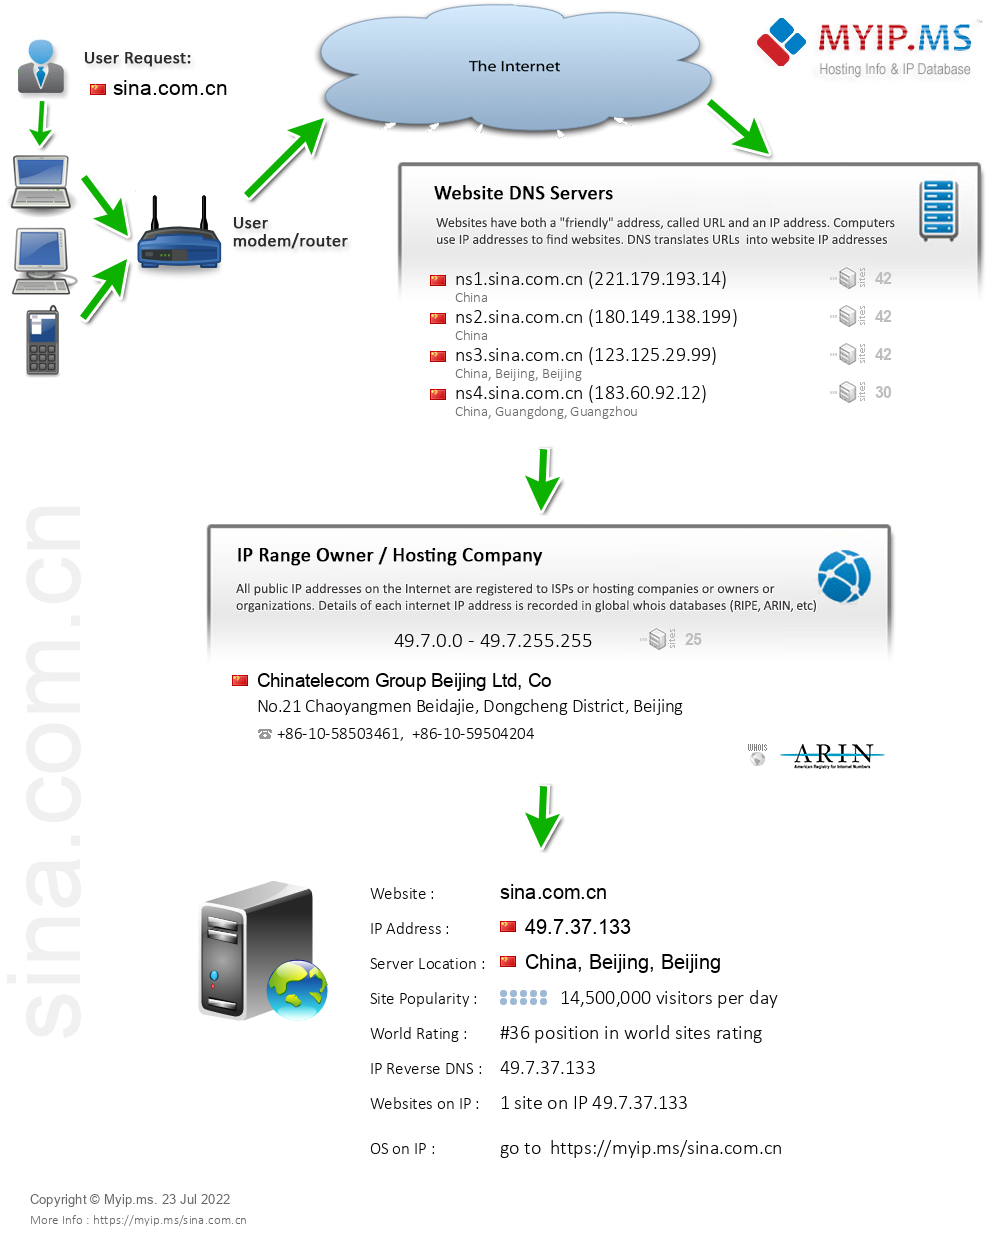 Sina.com.cn - Website Hosting Visual IP Diagram